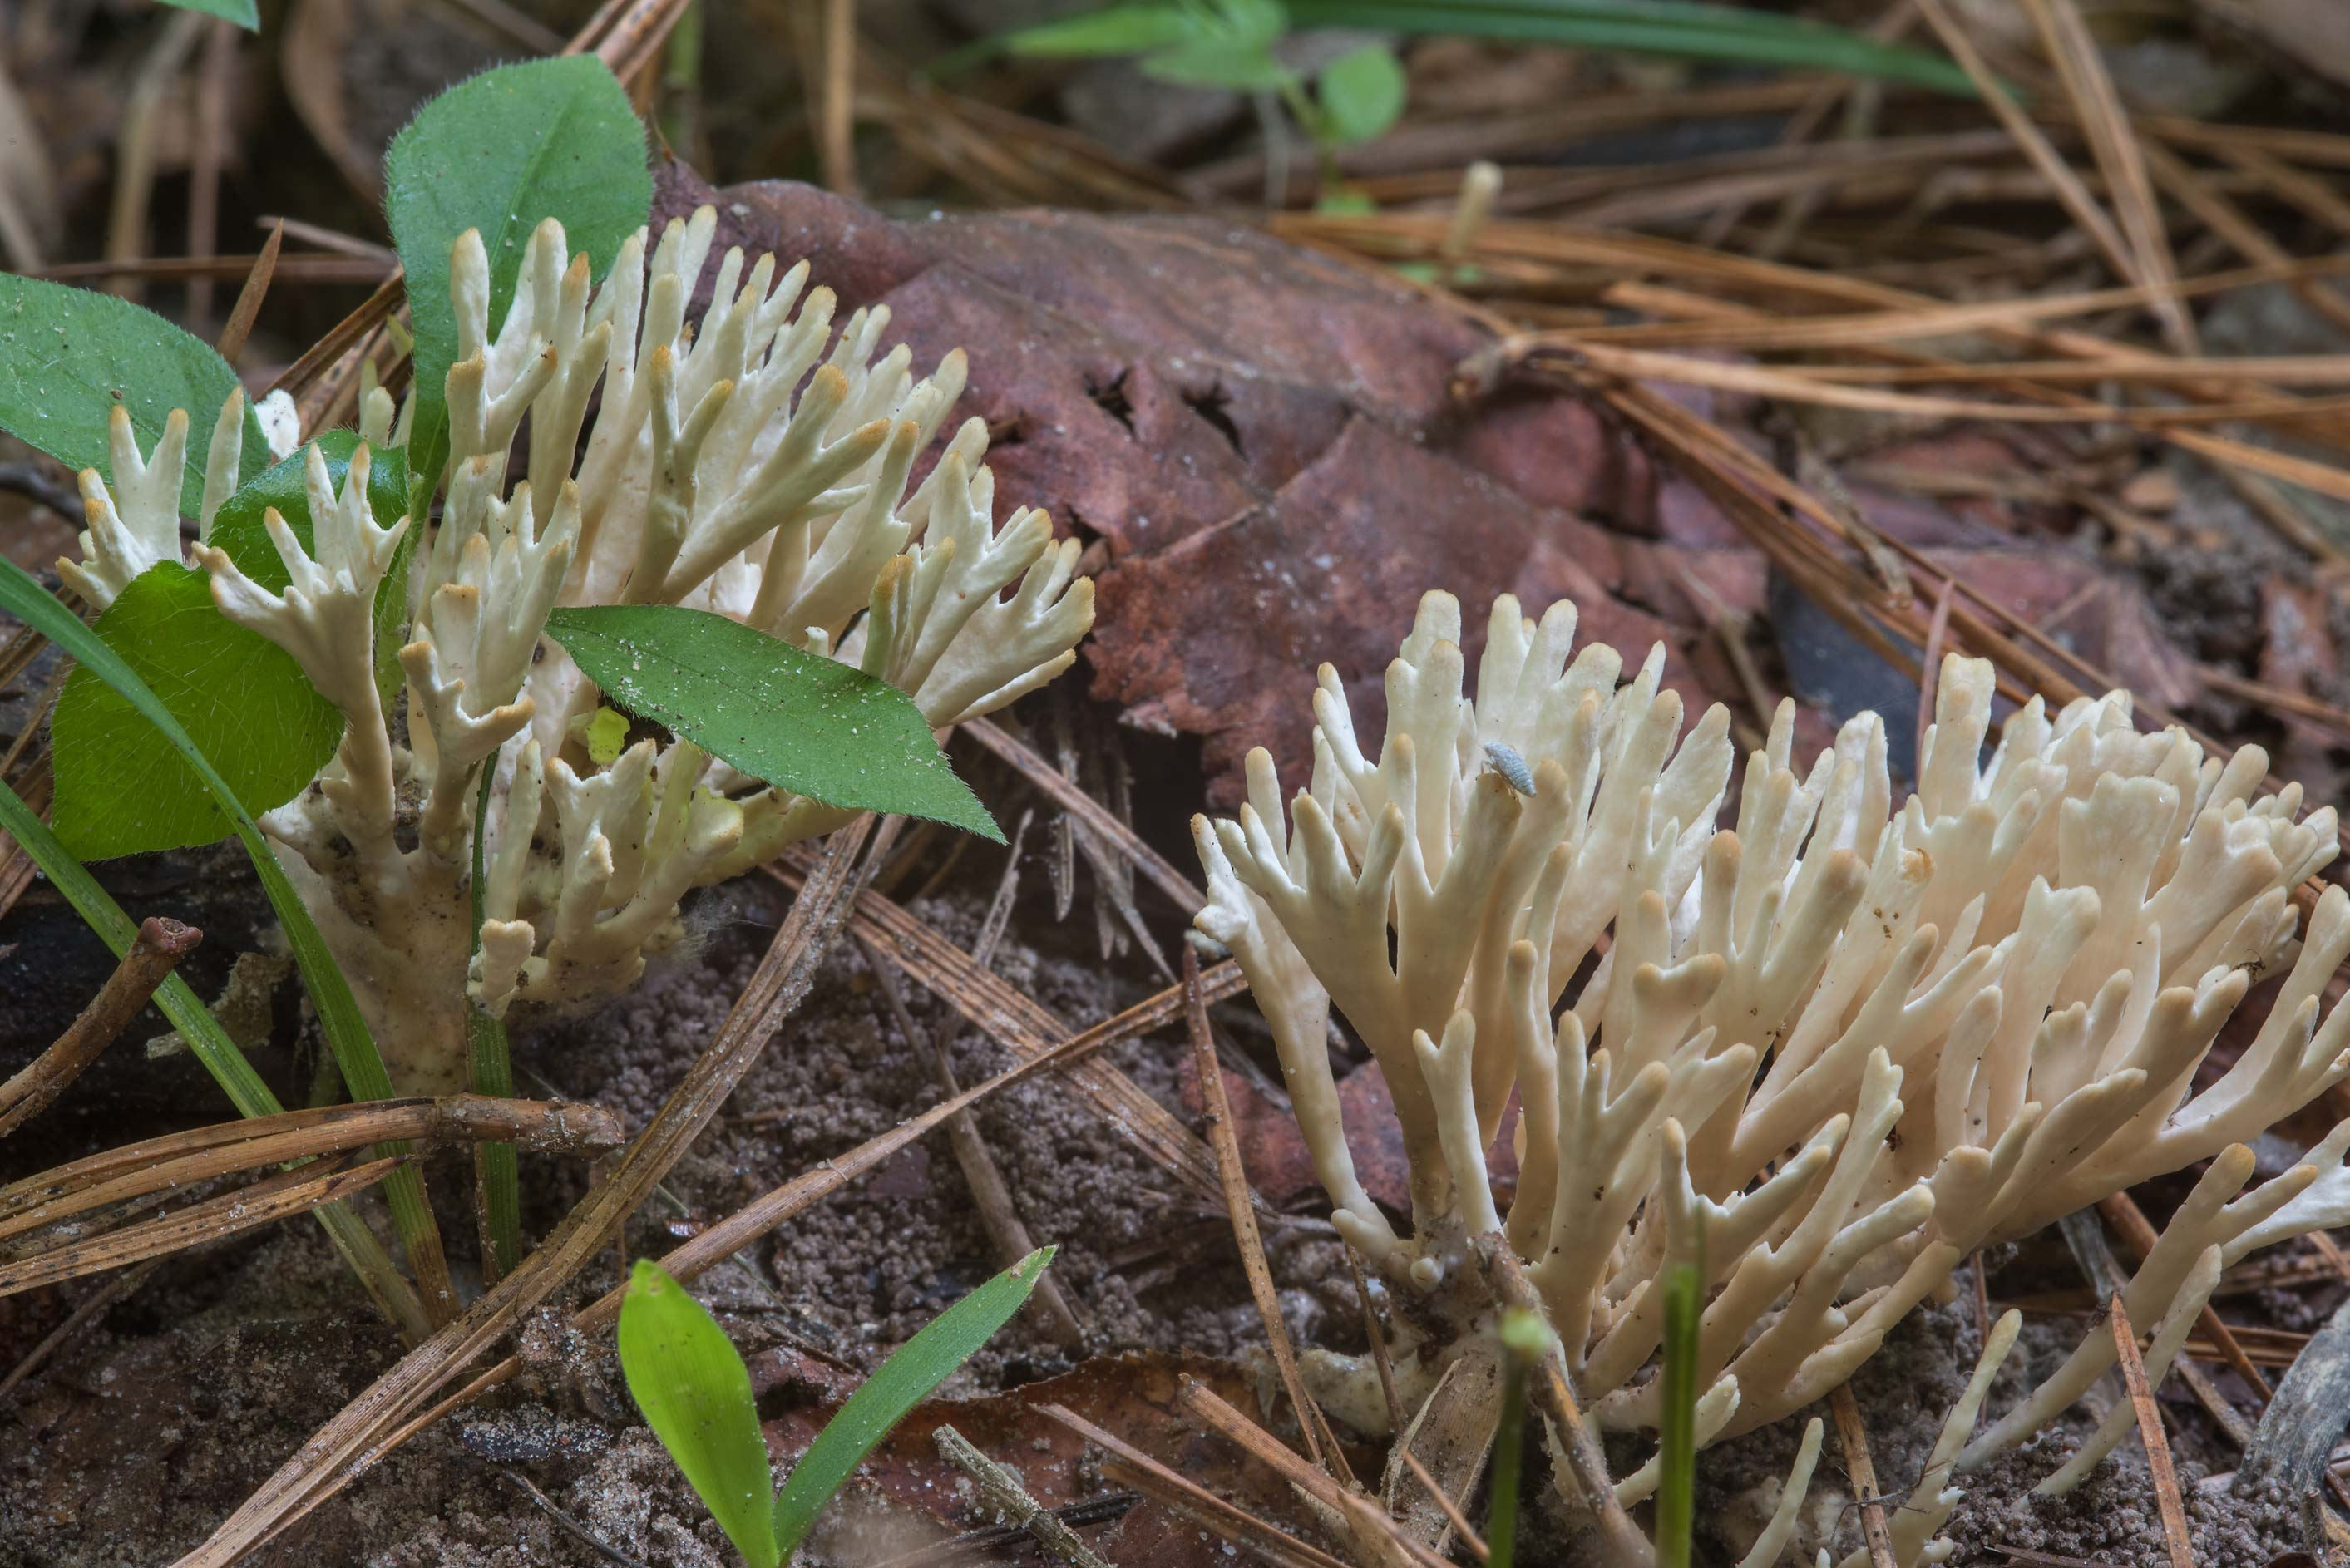 Group of coral like mushrooms Tremellodendropsis...Forest, near Huntsville. Texas